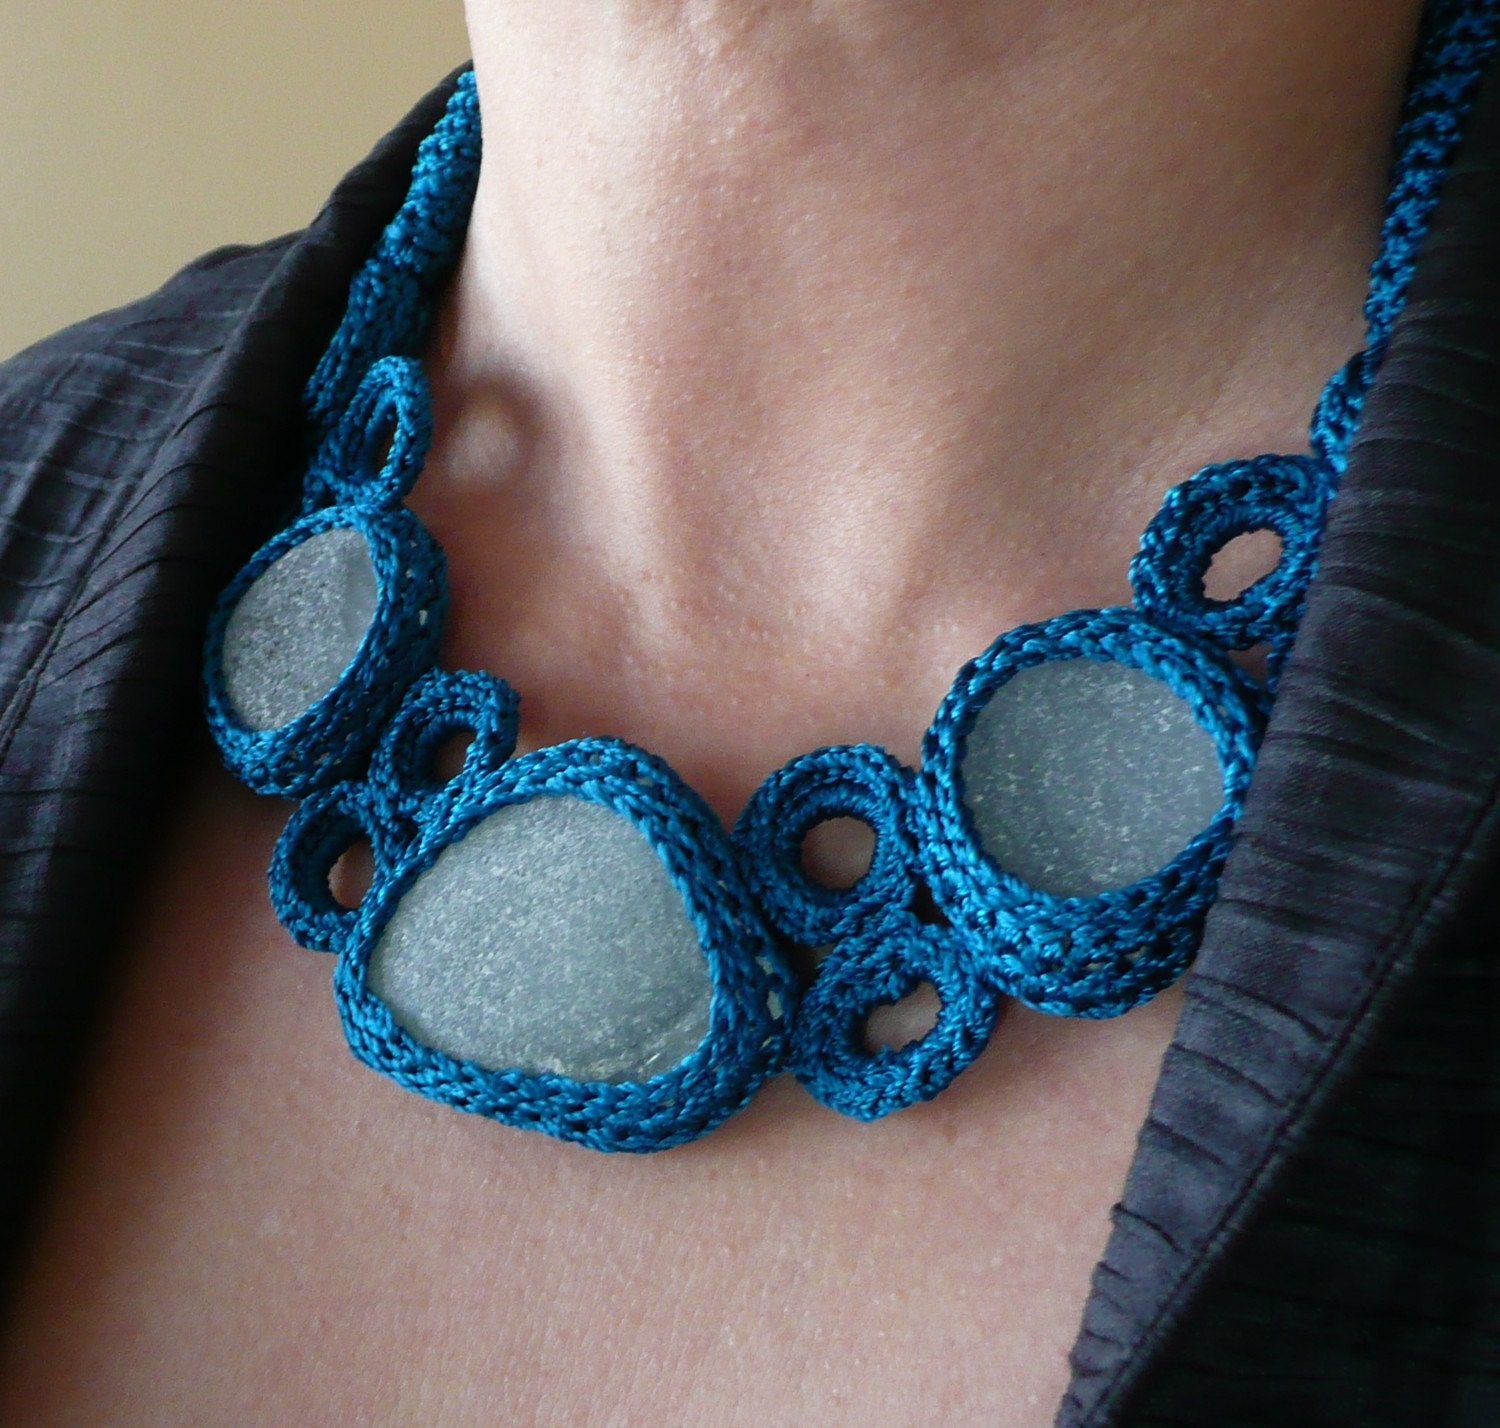 Teal necklace with 5 sea glasses - OOAK